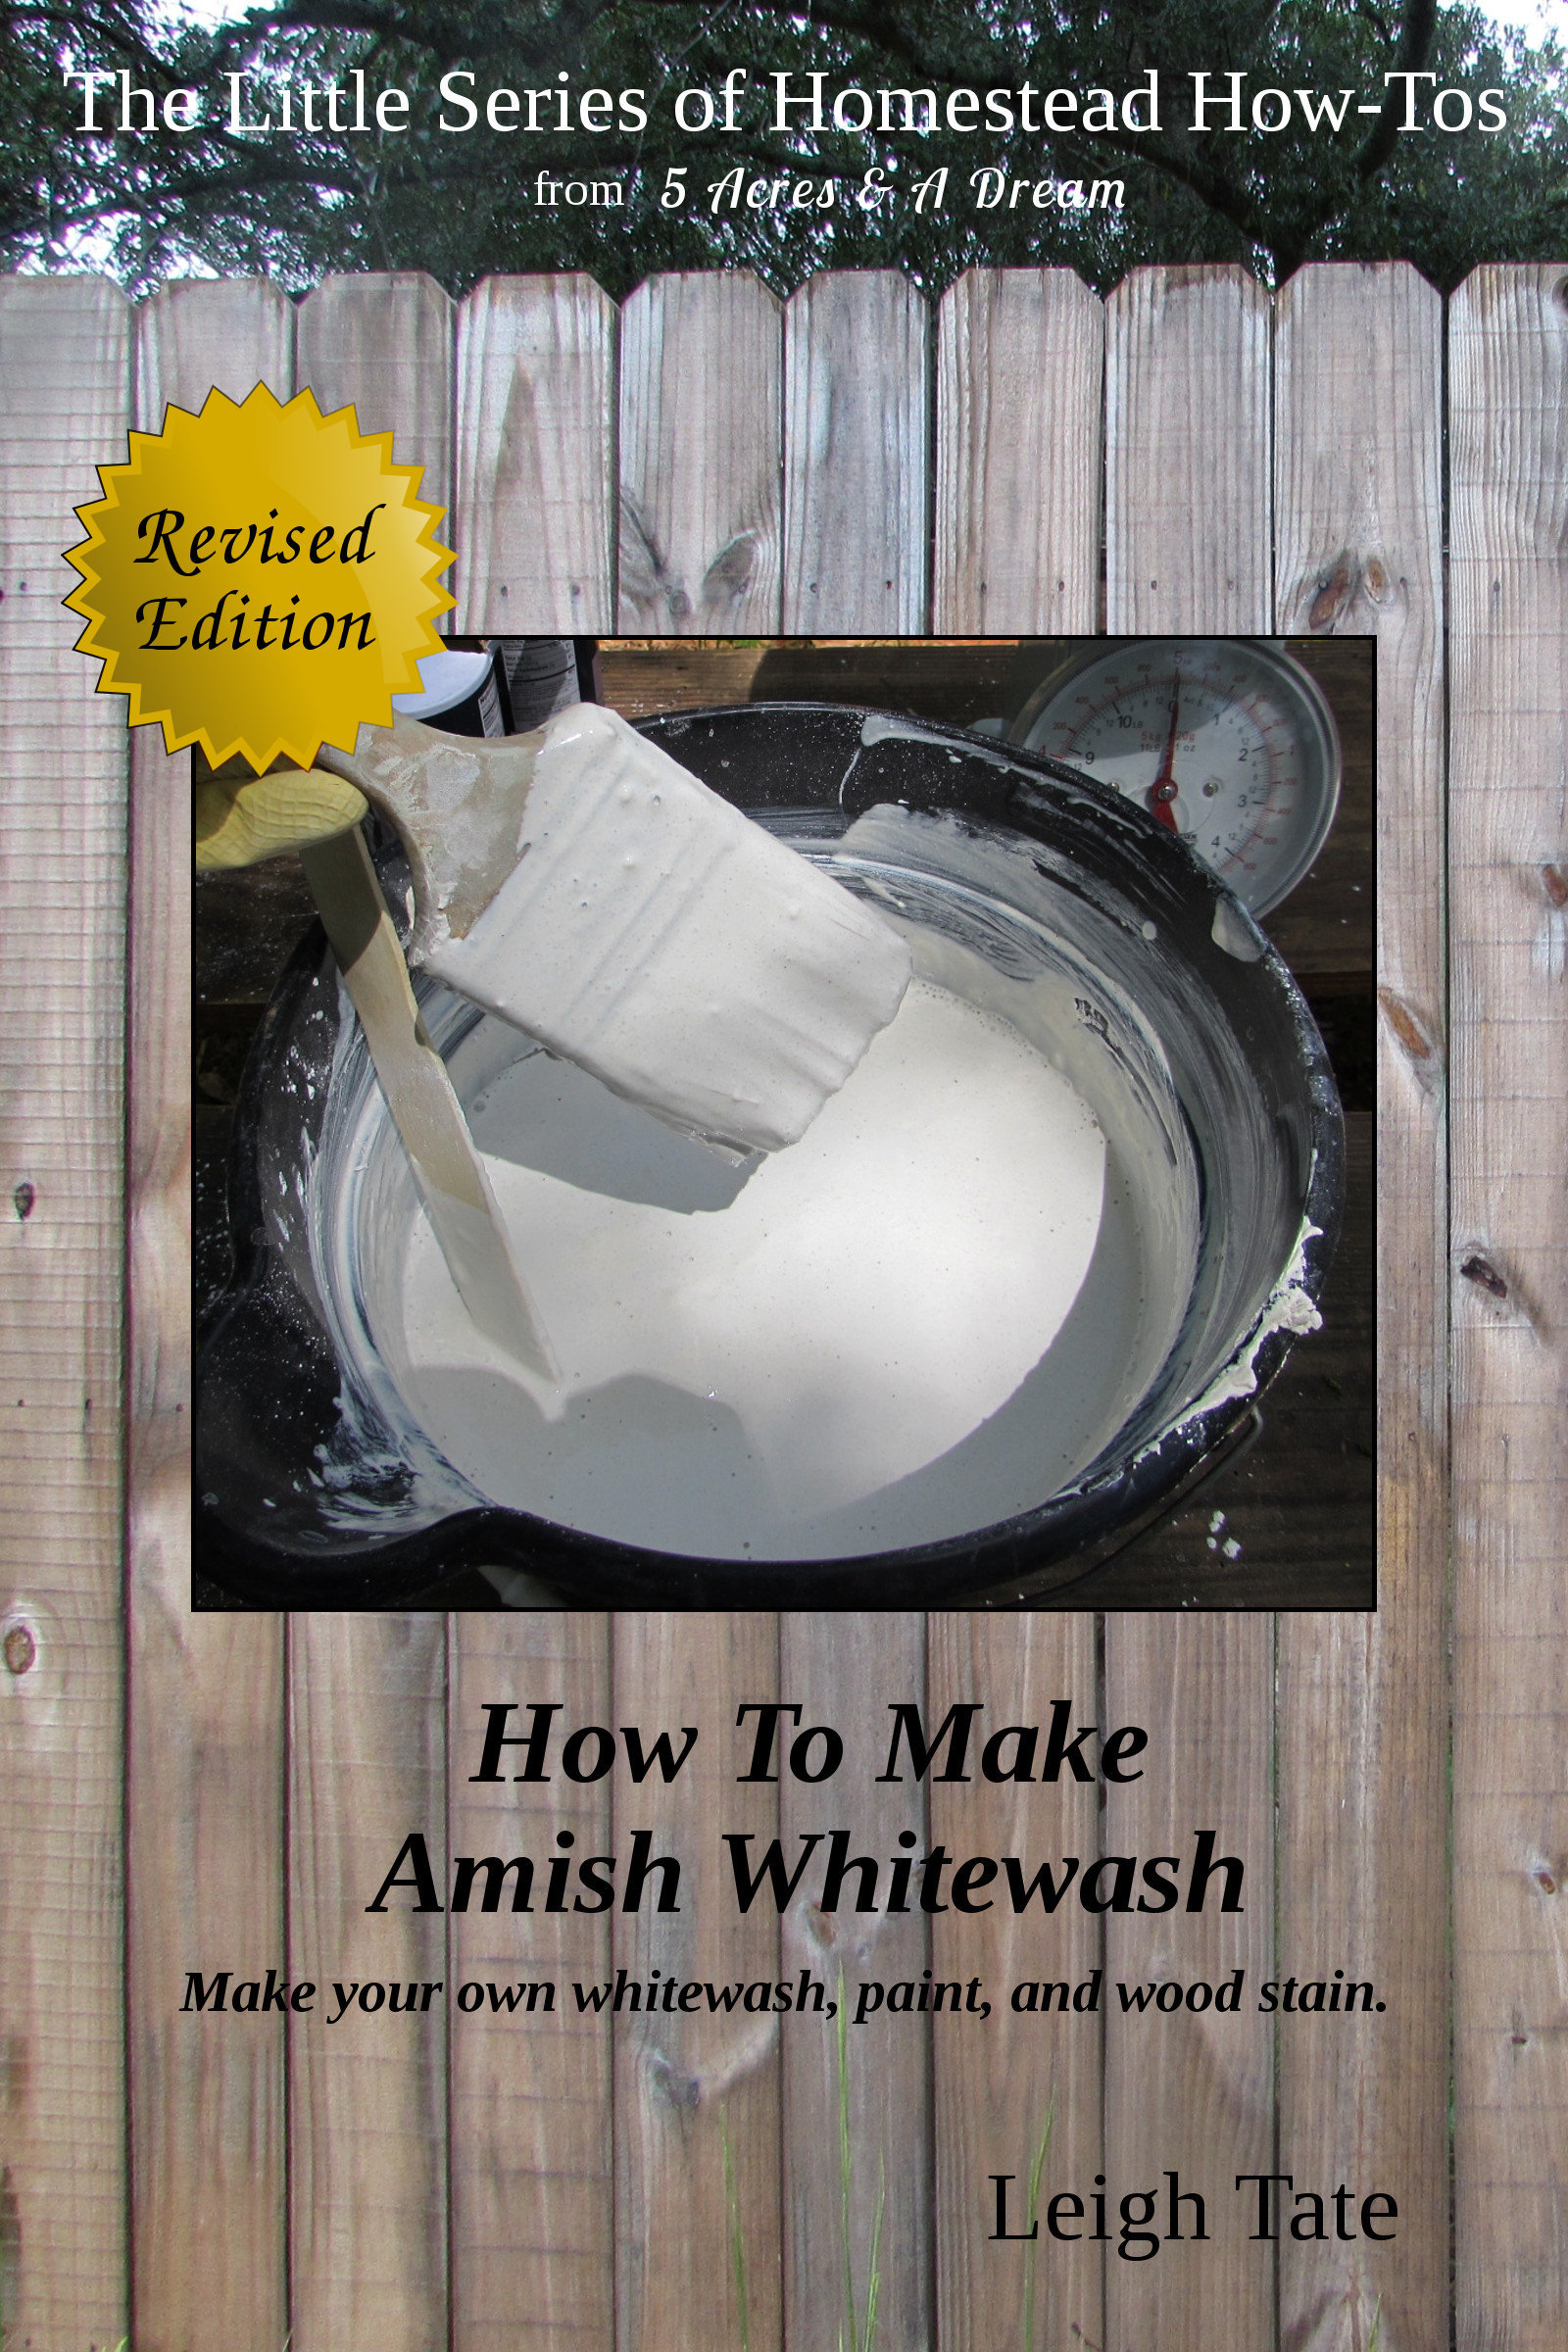 How To Make Amish Whitewash: Make Your Own Whitewash, Paint, and Wood Stain